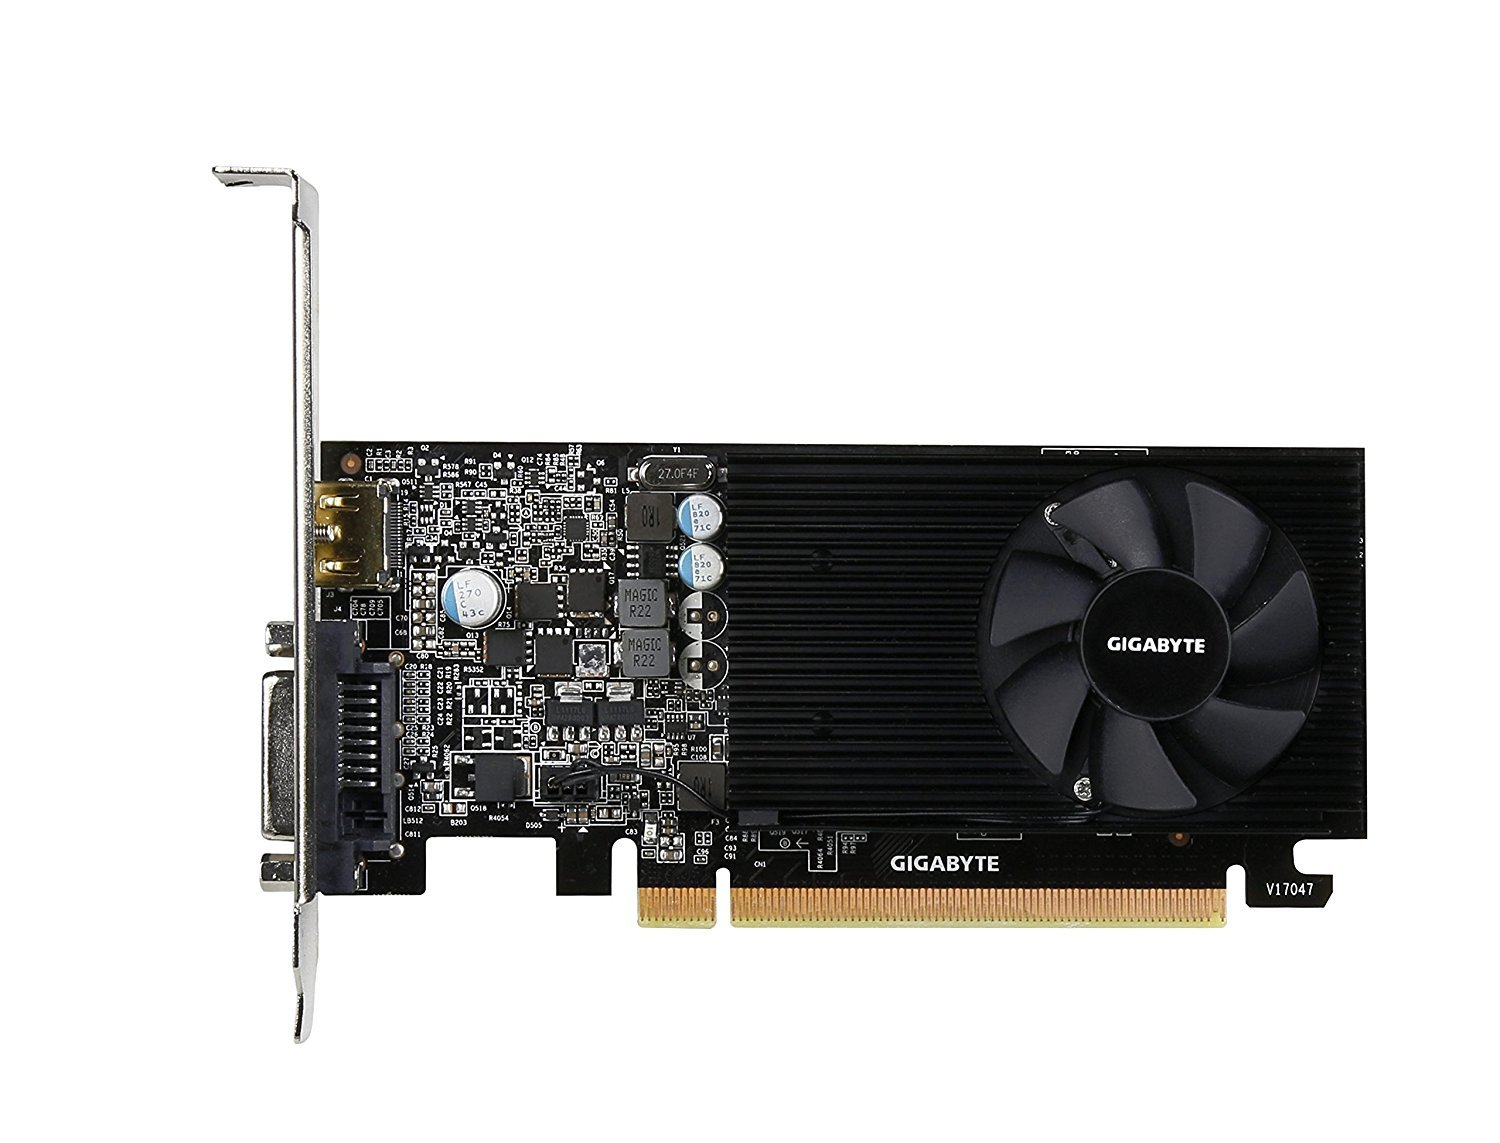 Gigabyte GT 1030 2Gb Graphic Card image